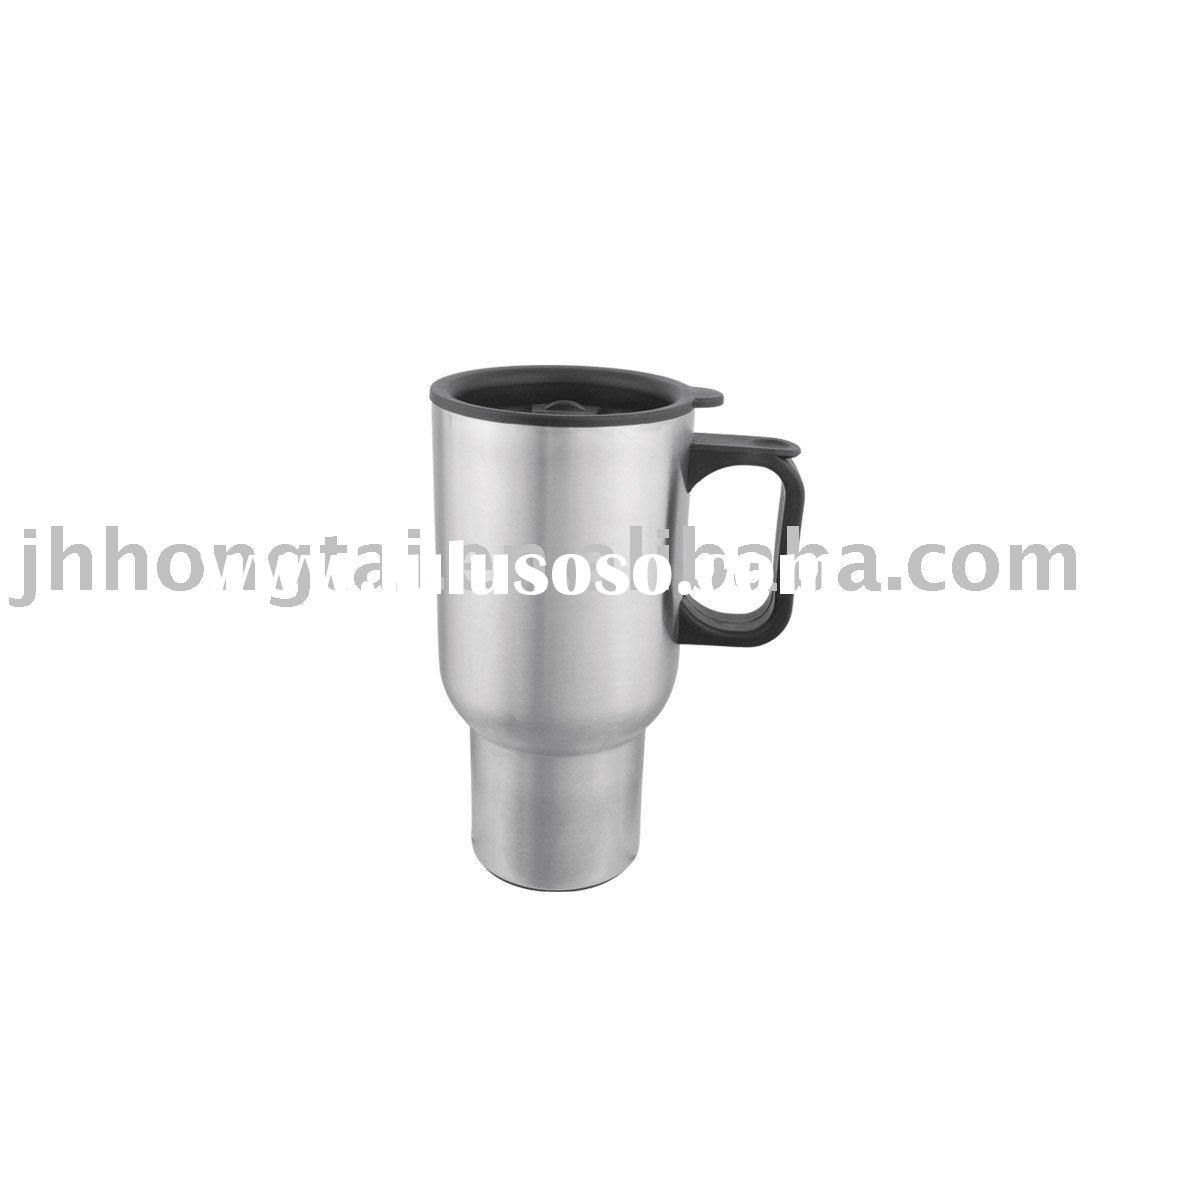 Stainless steel Travel mug with handle